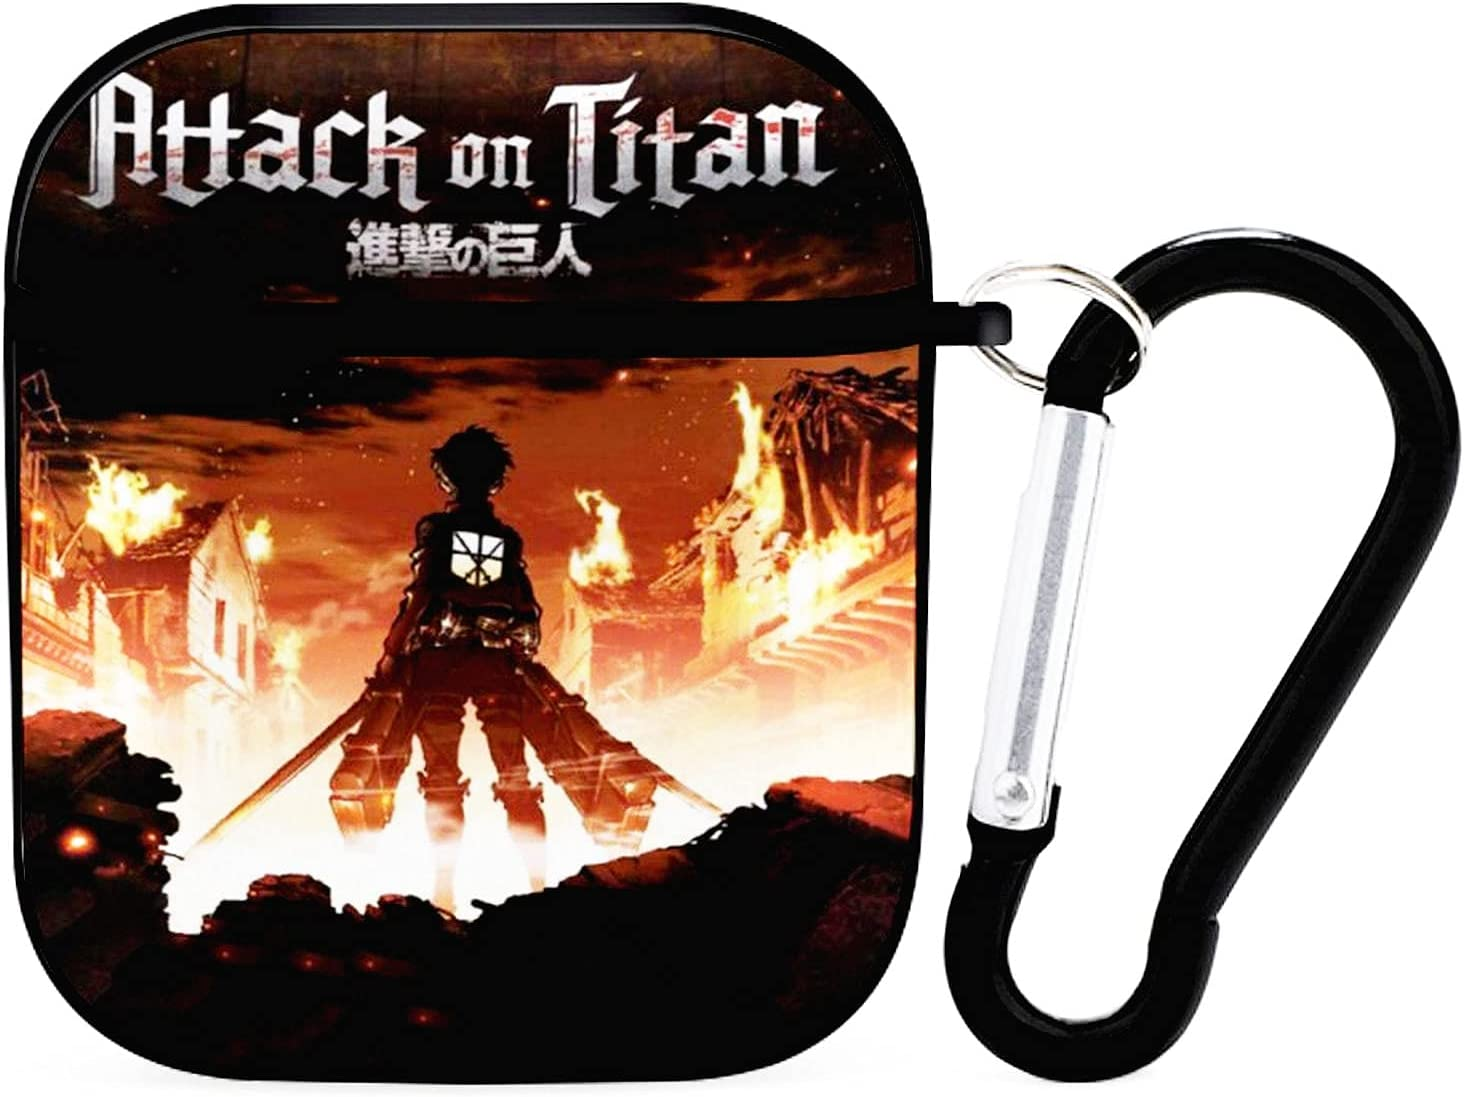 Attack on Titan Airpod Case, Shockproof and Anti-Drop Protective Case for AirPods,Anime Soft Shell TPU Protective Cover with Keychain, Suitable for Apple Airpod 2 & 1